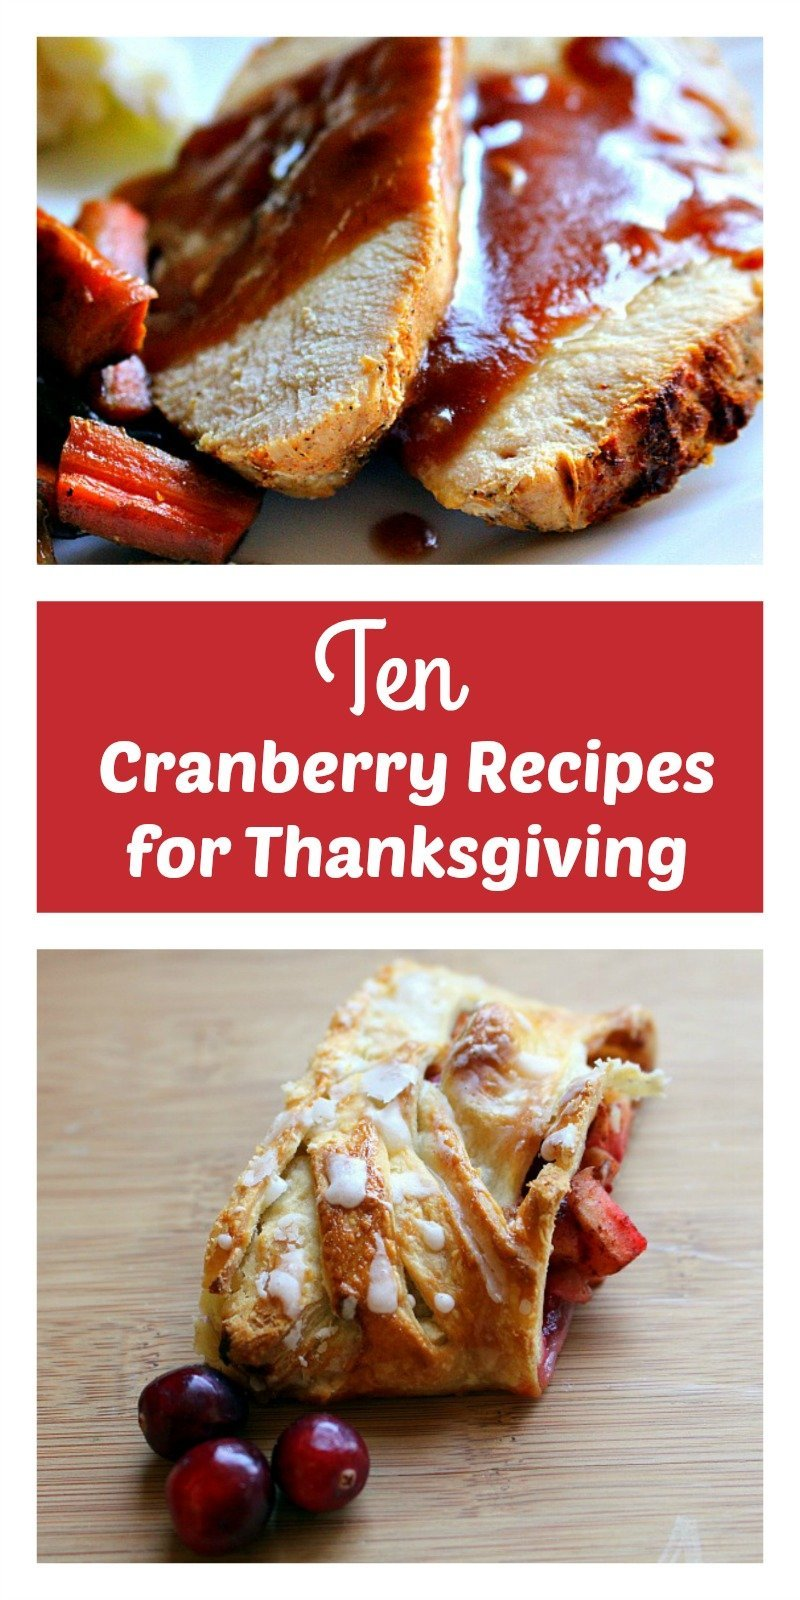 Ten delicious main, side, and dessert dishes for Thanksgiving featuring sweet and tangy cranberry.